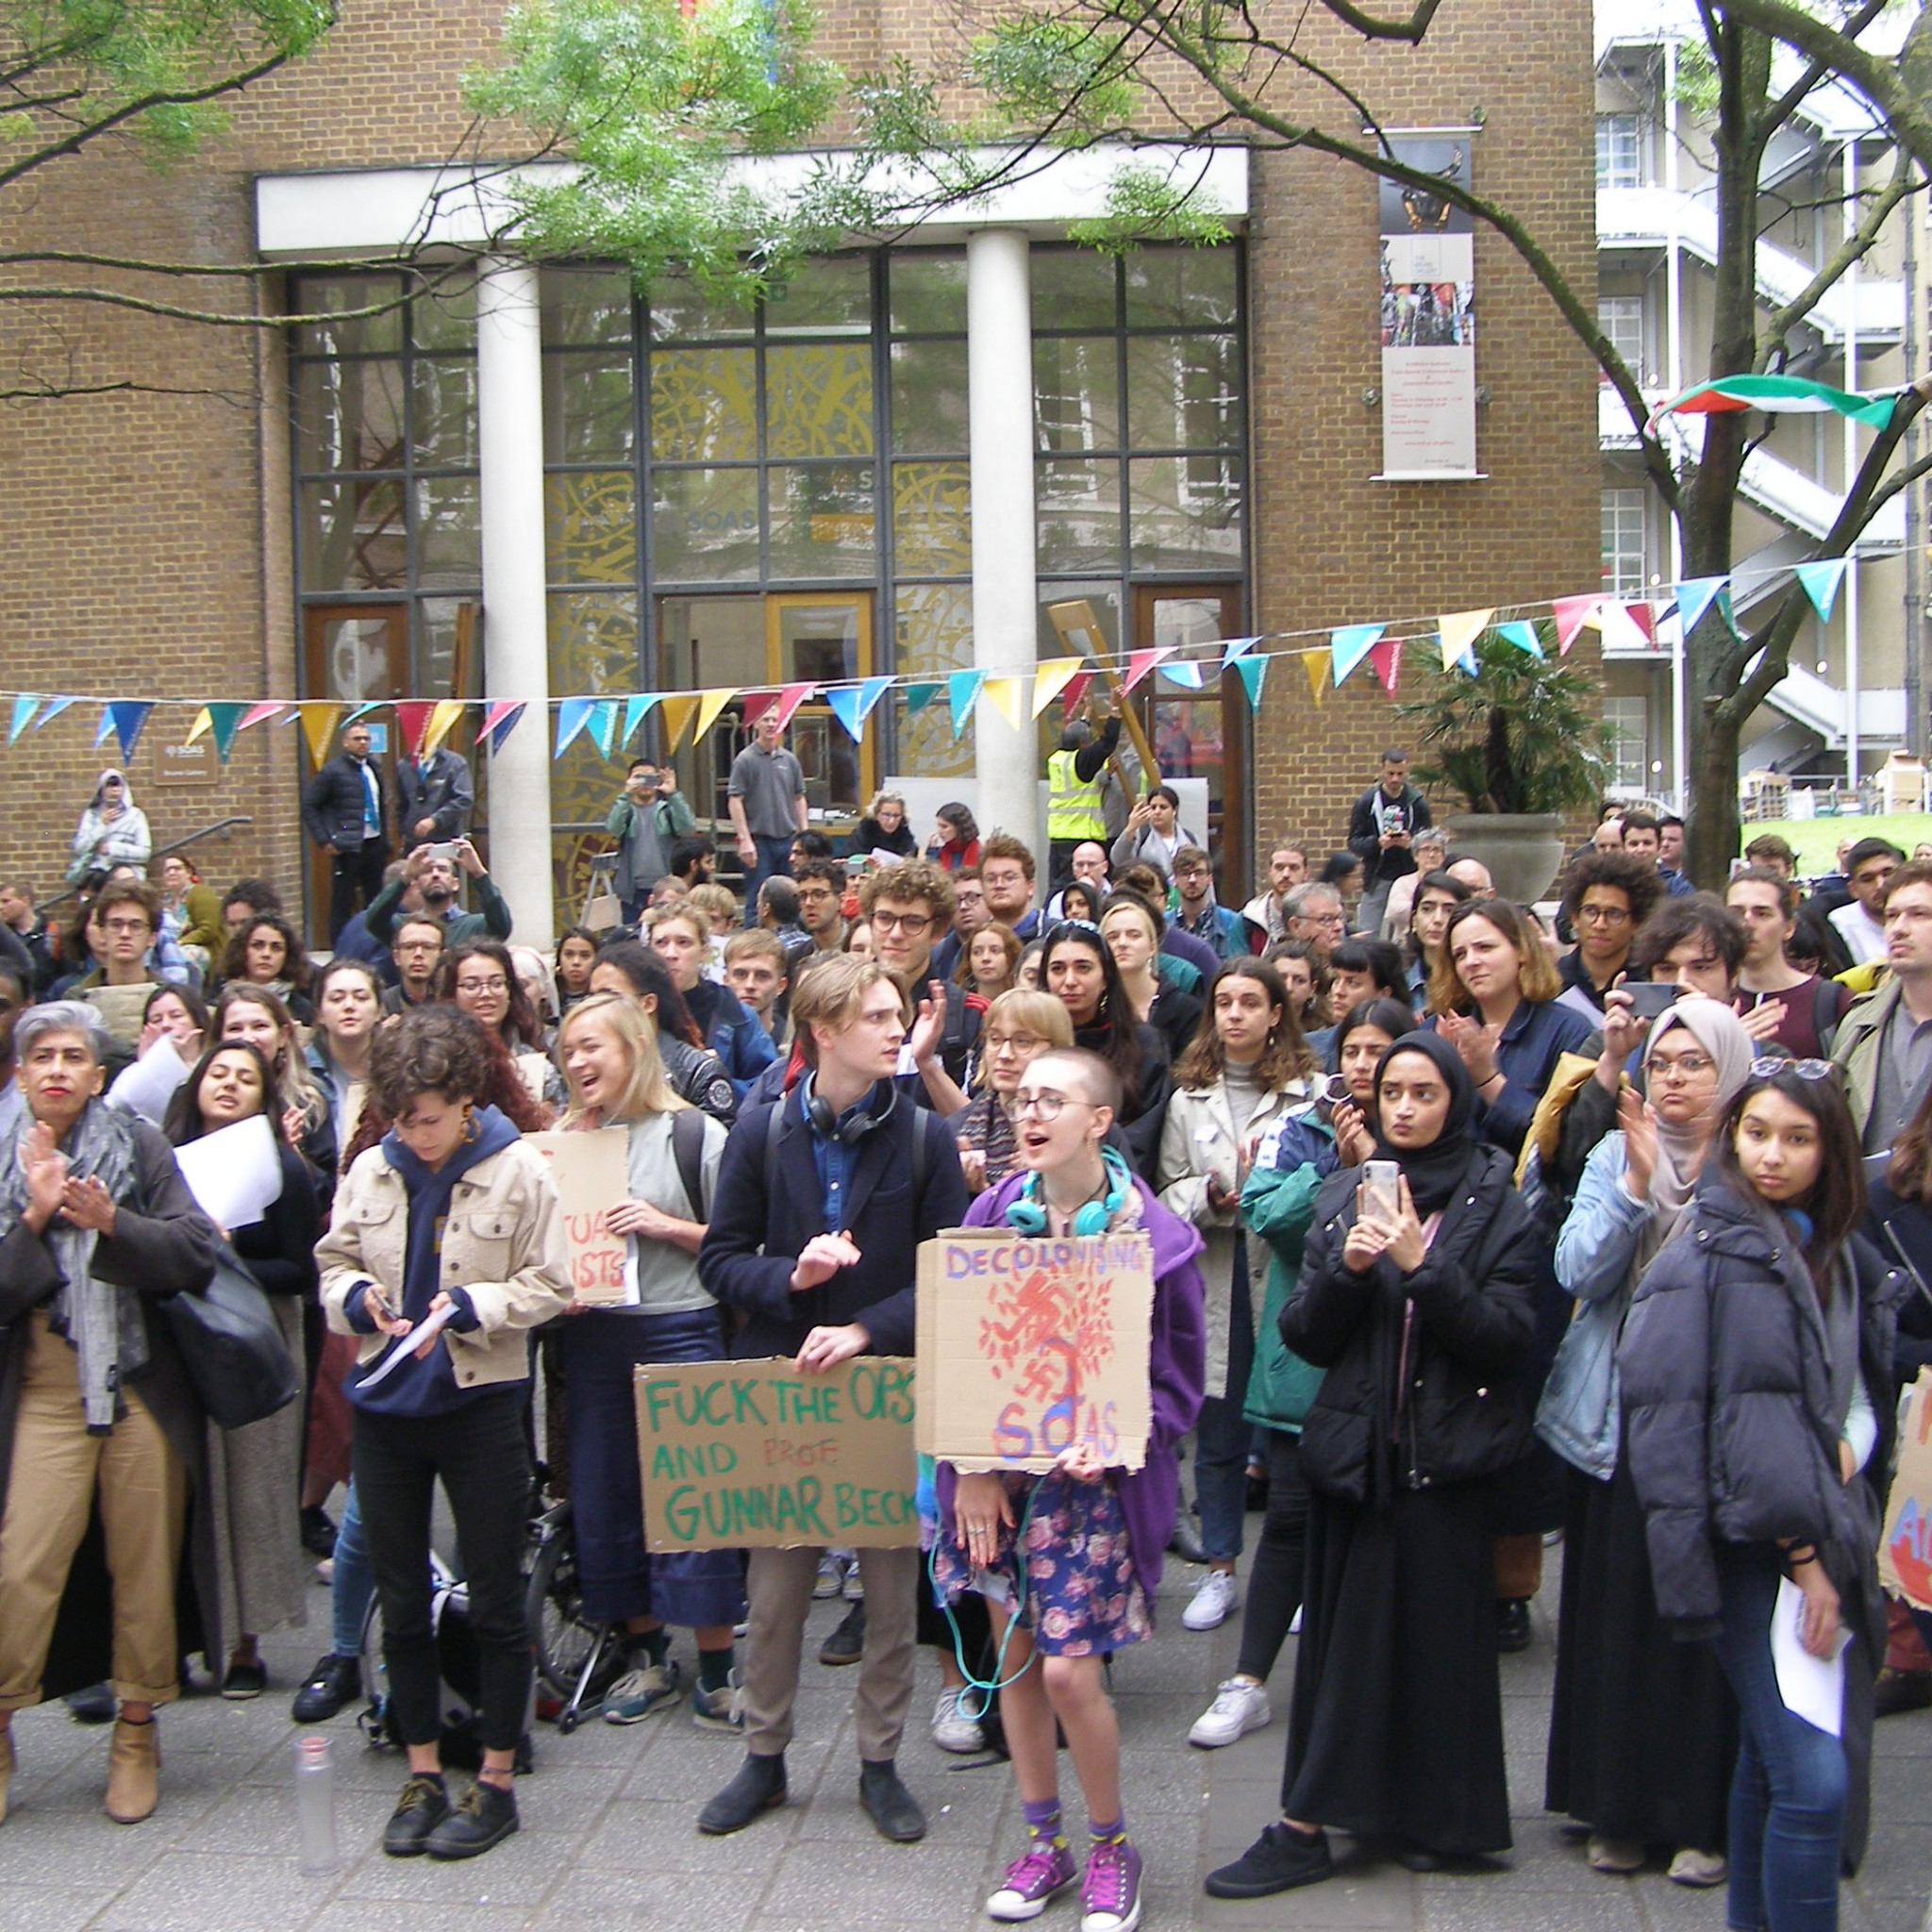 Over 300 students and lecturers rallied outside SOAS in London yesterday afternoon demanding that law lecturer Gunnar Beck is sacked